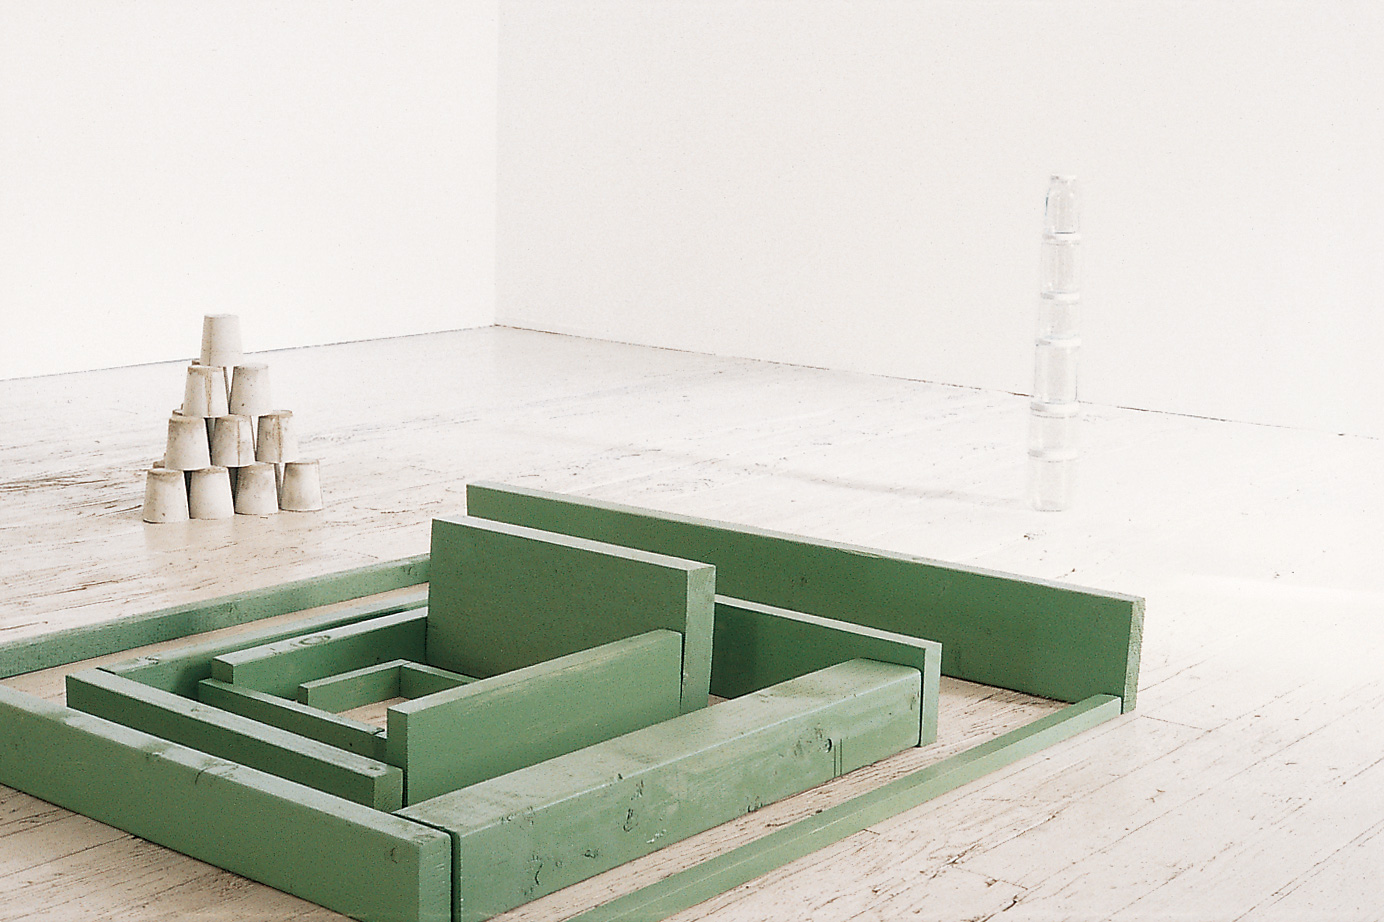 Installation view of Tony Feher at Wooster Gardens (now Sikkema Jenkins & Co.), New York, September 11–October 9, 1993 (© Tony Feher; courtesy of Anthony Meier Fine Art, San Francisco, and Sikkema Jenkins & Co., New York)